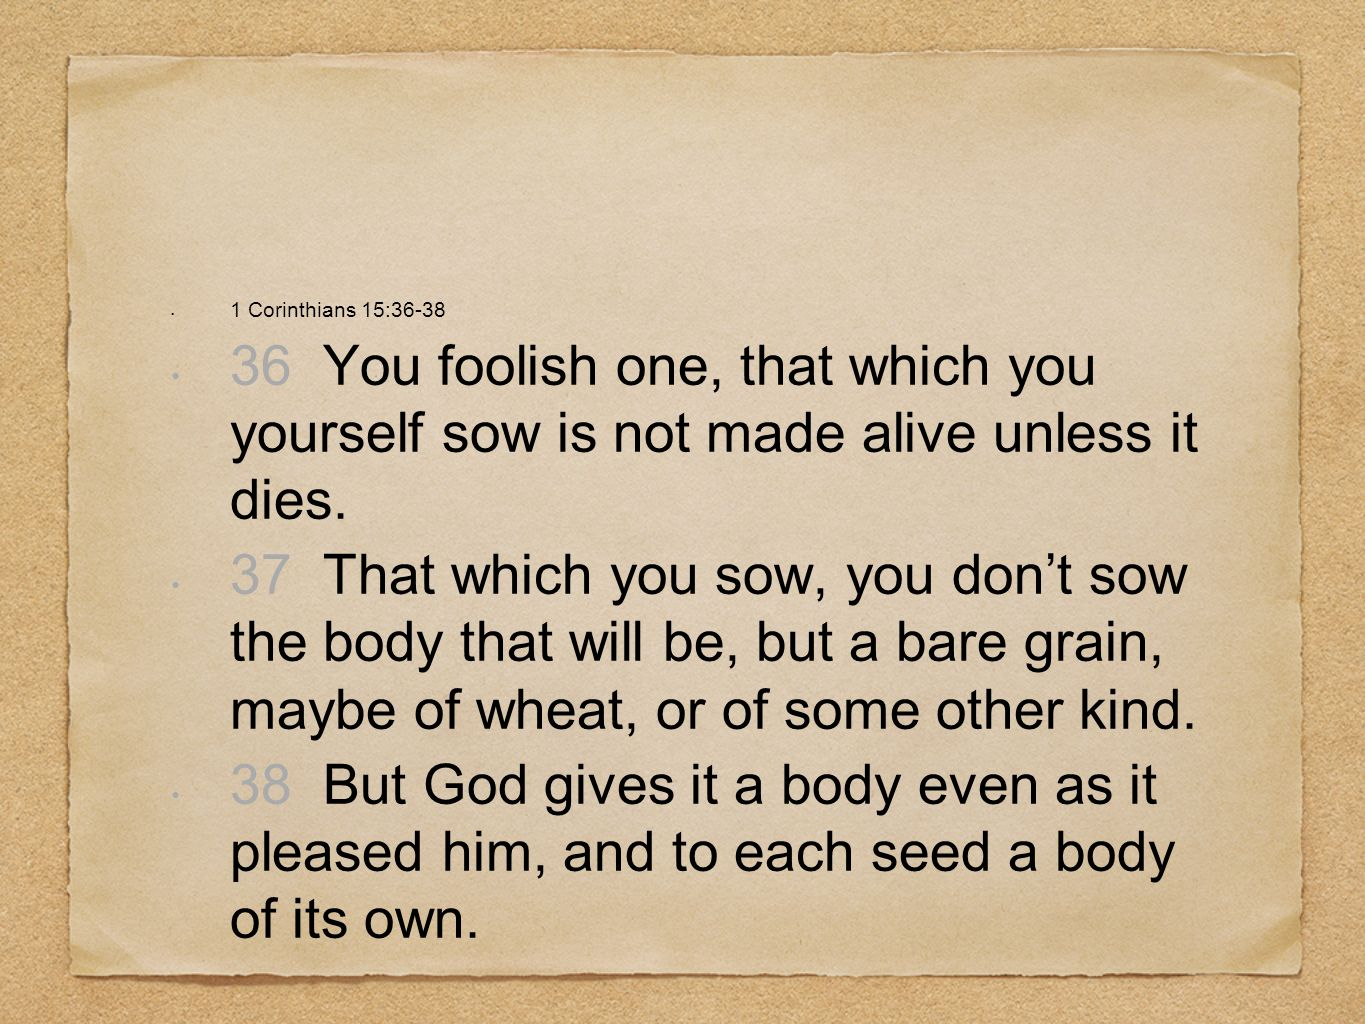 1 Corinthians 15:36-3836 You foolish one, that which you yourself sow is not made alive unless it dies.